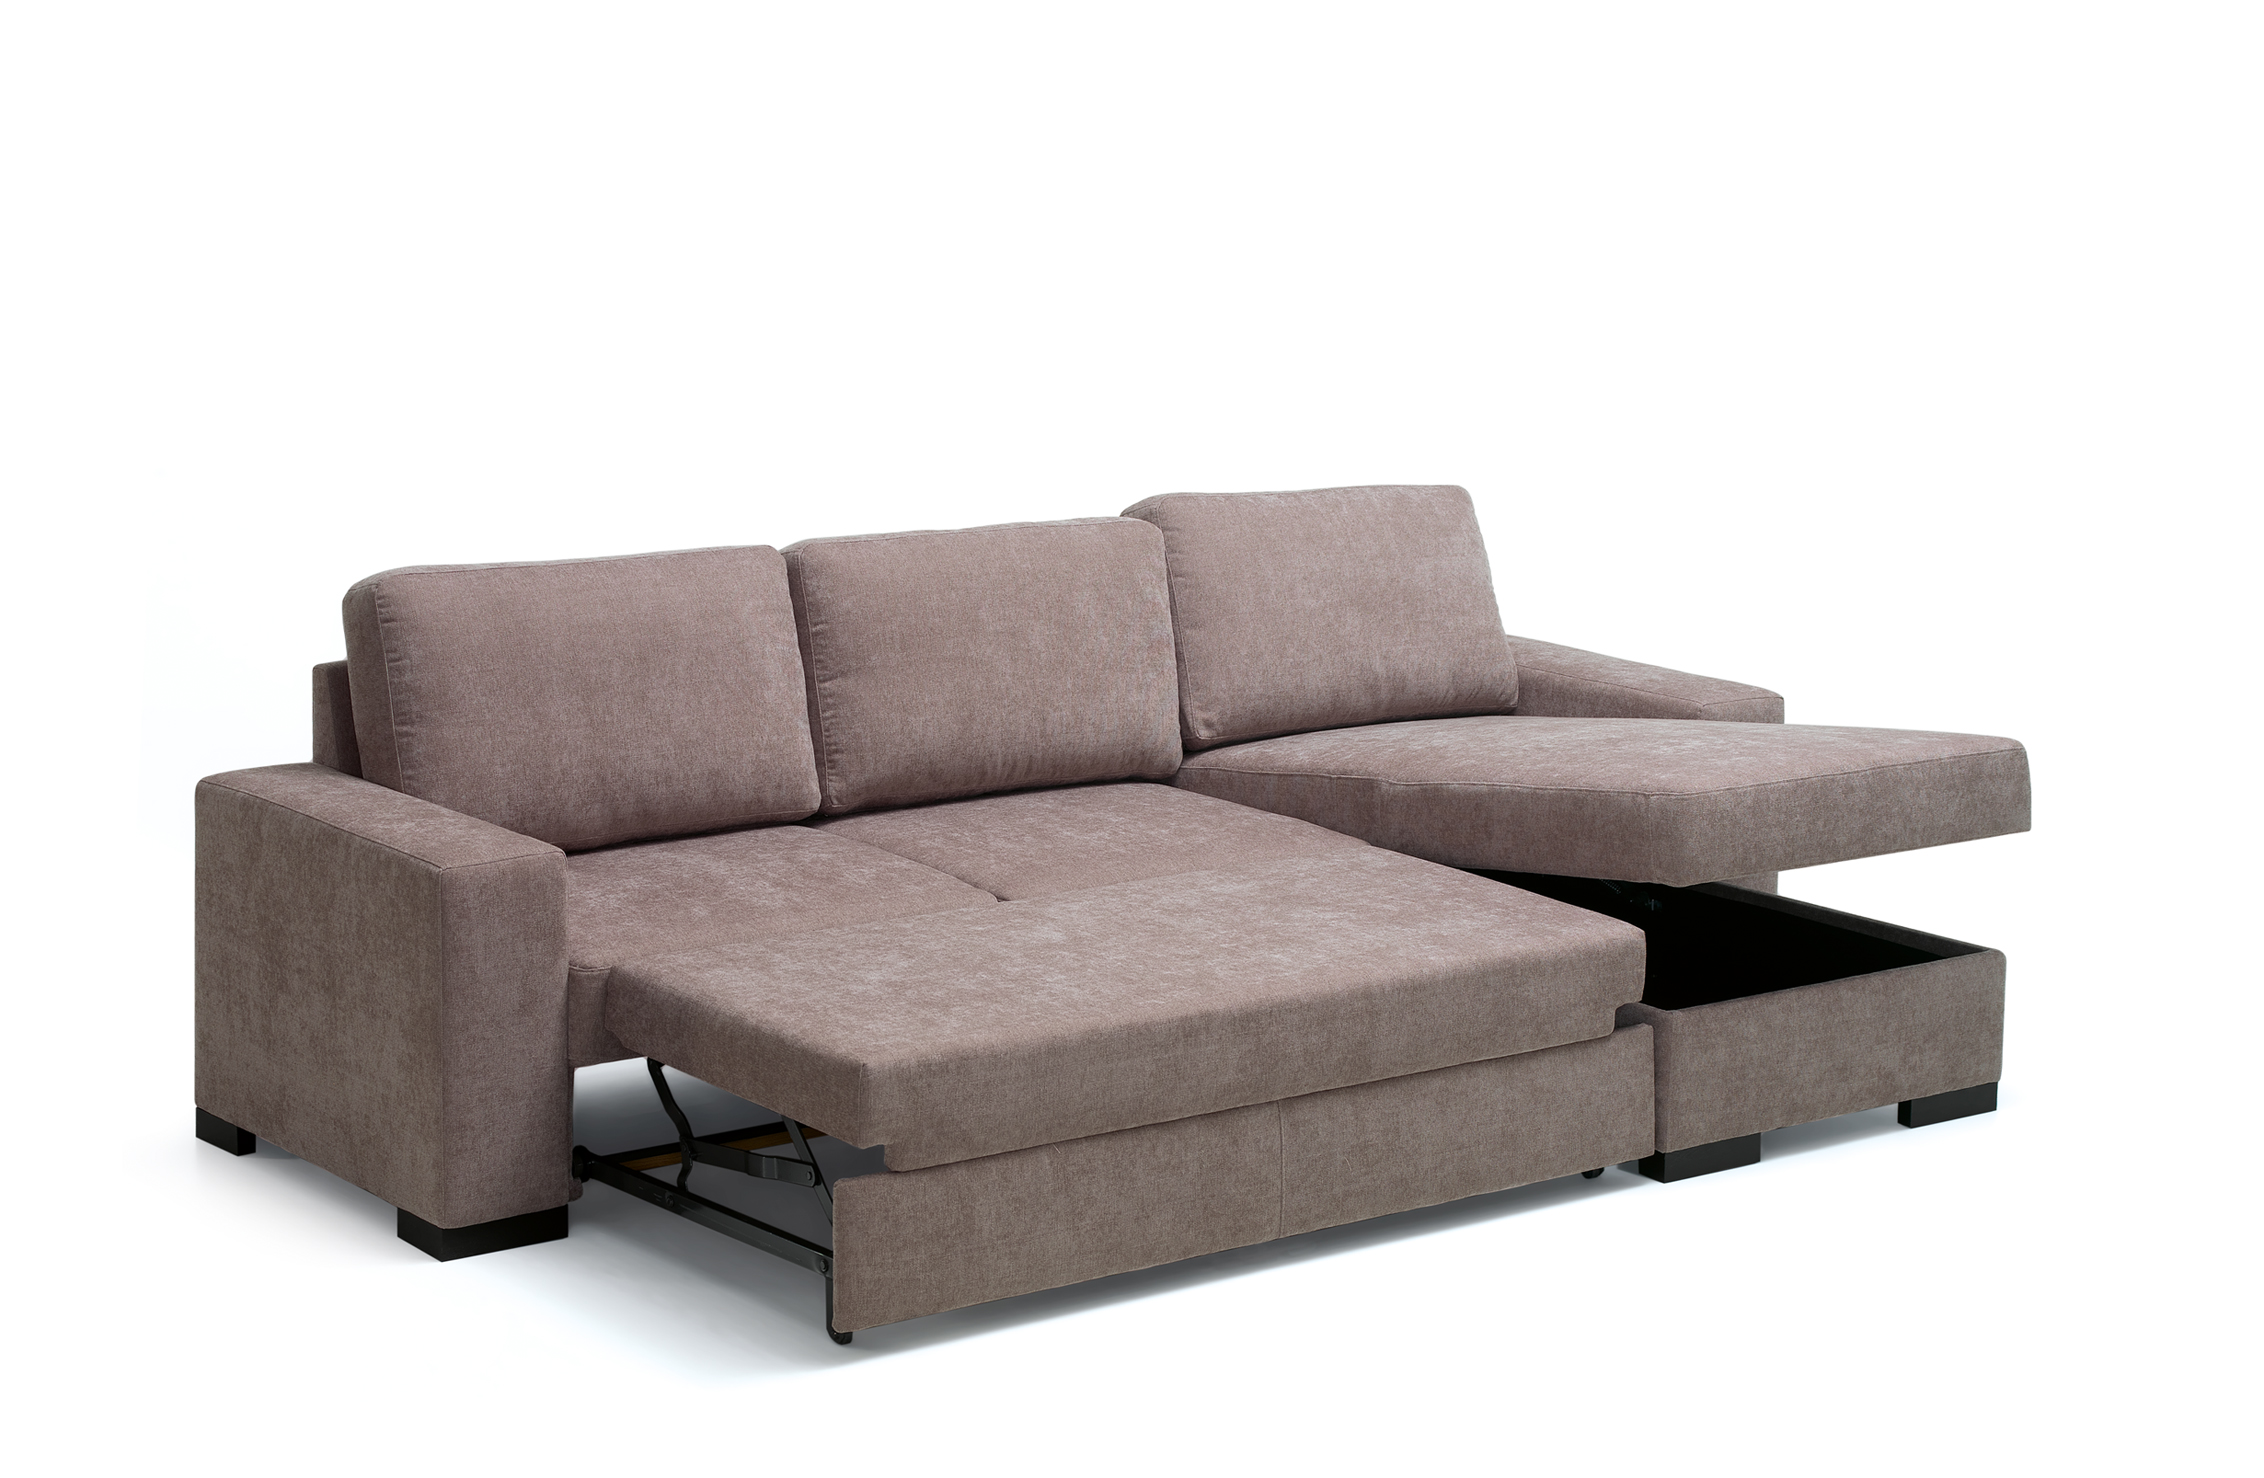 Sof riga chaise long mundo do sof for Sofas de 4 plazas baratos